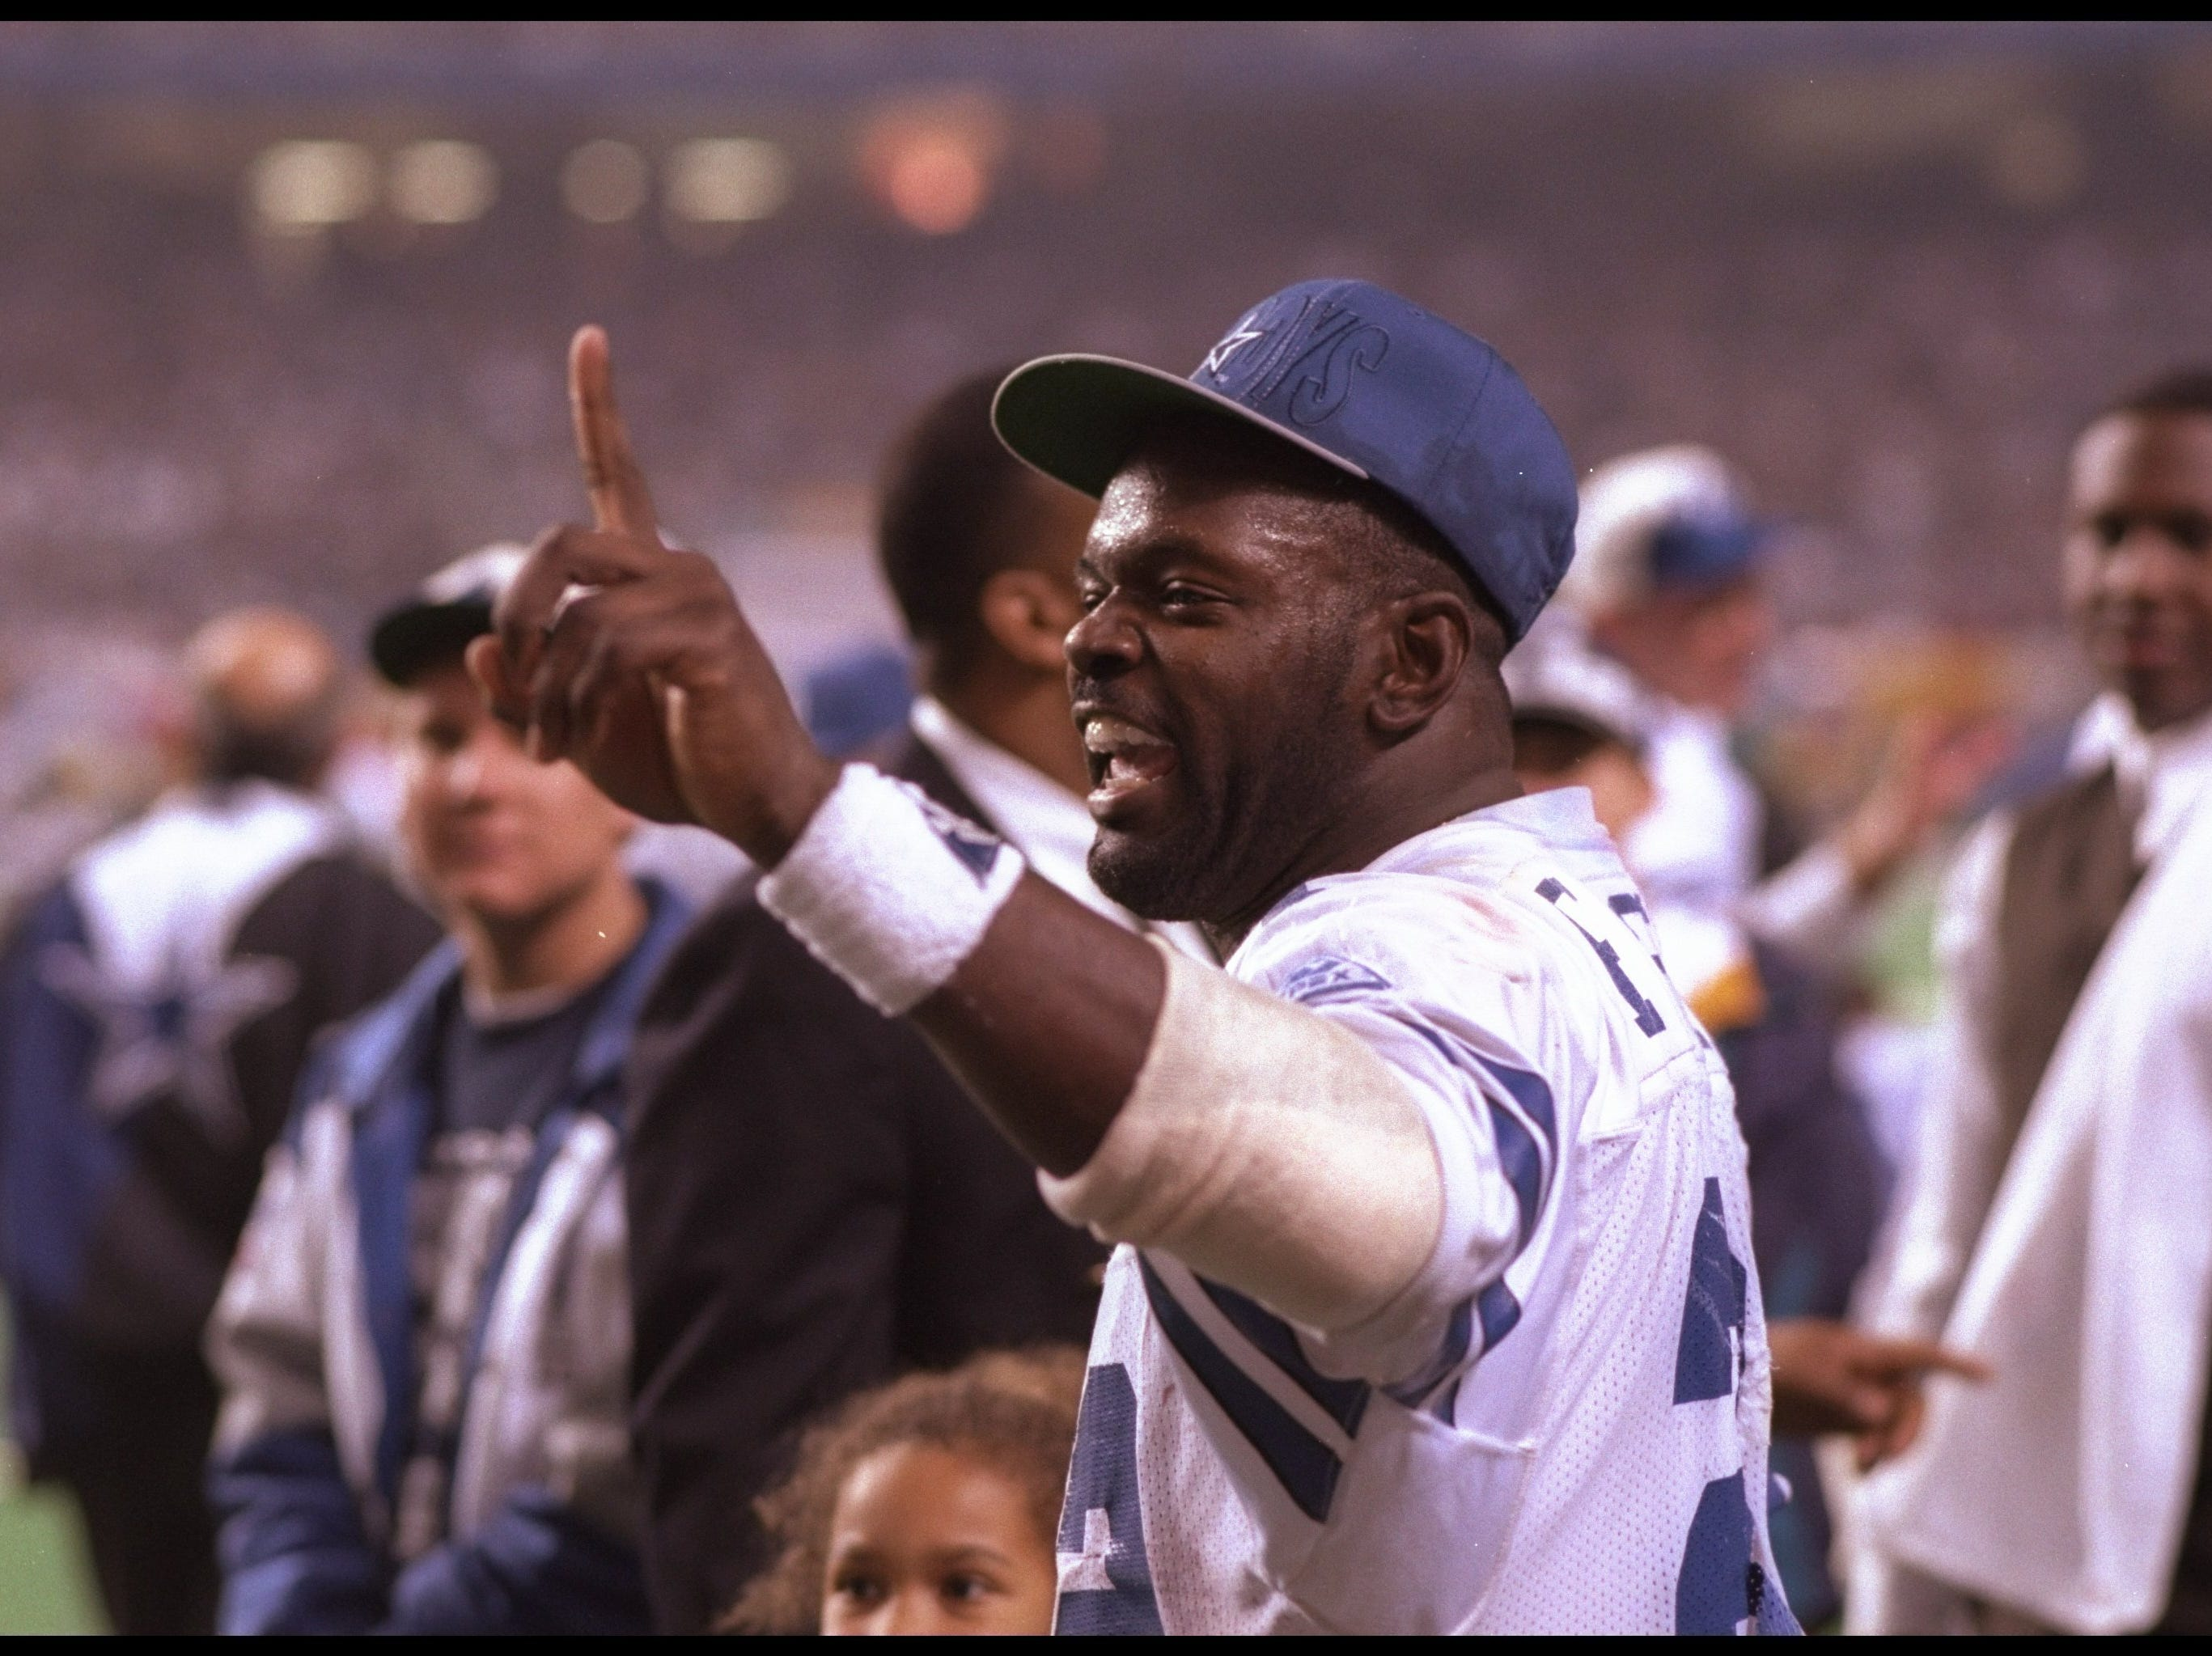 31 Jan 1993: Running back Emmitt Smith of the Dallas Cowboys celebrates during Super Bowl XXVII against the Buffalo Bills at the Rose Bowl in Pasadena, California. The Cowboys won the game, 52-17.